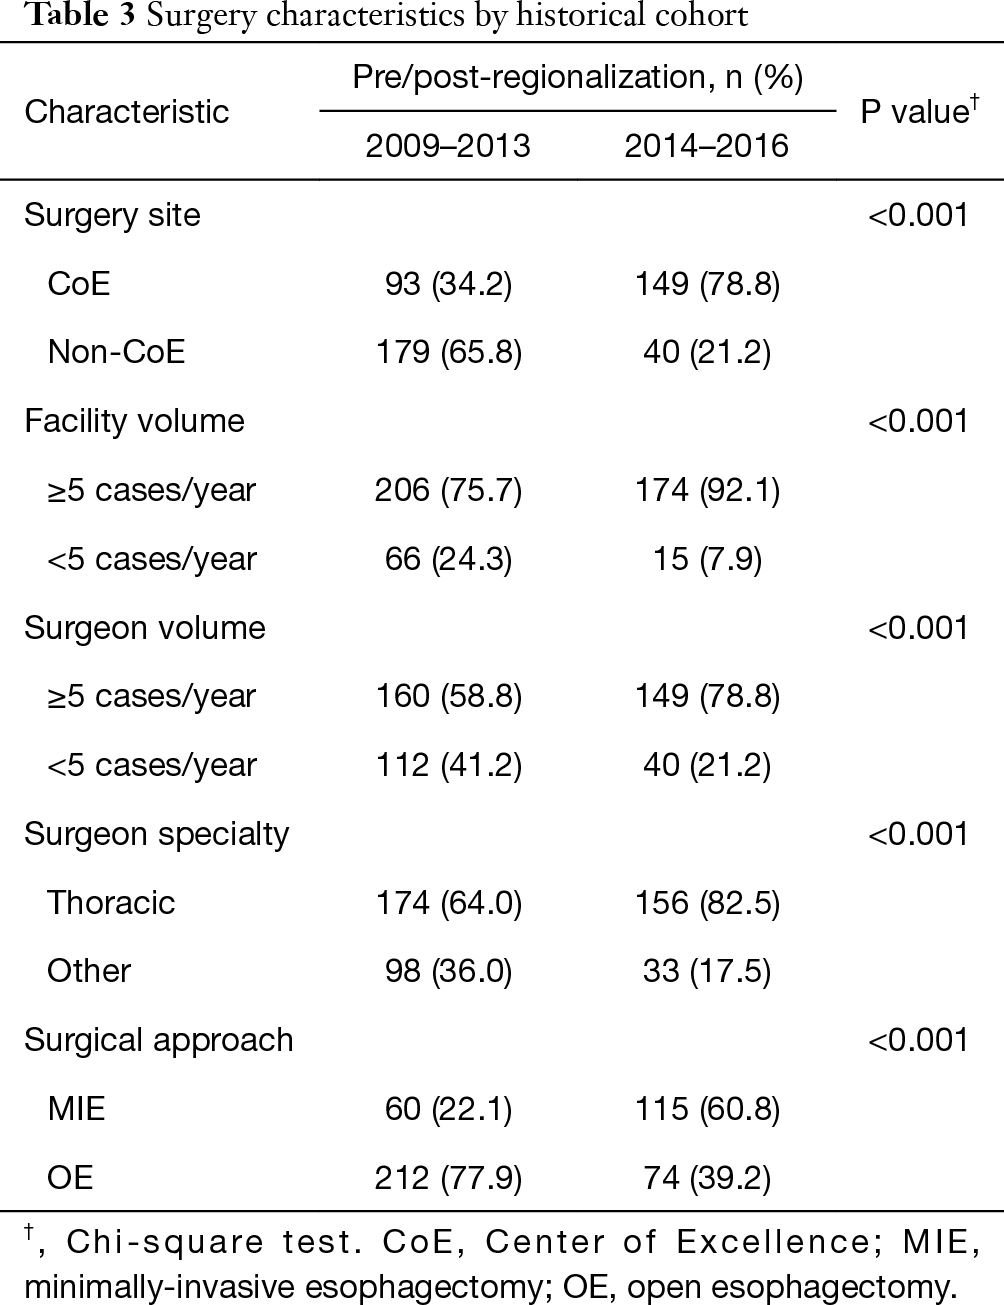 Regionalization of thoracic surgery improves short-term